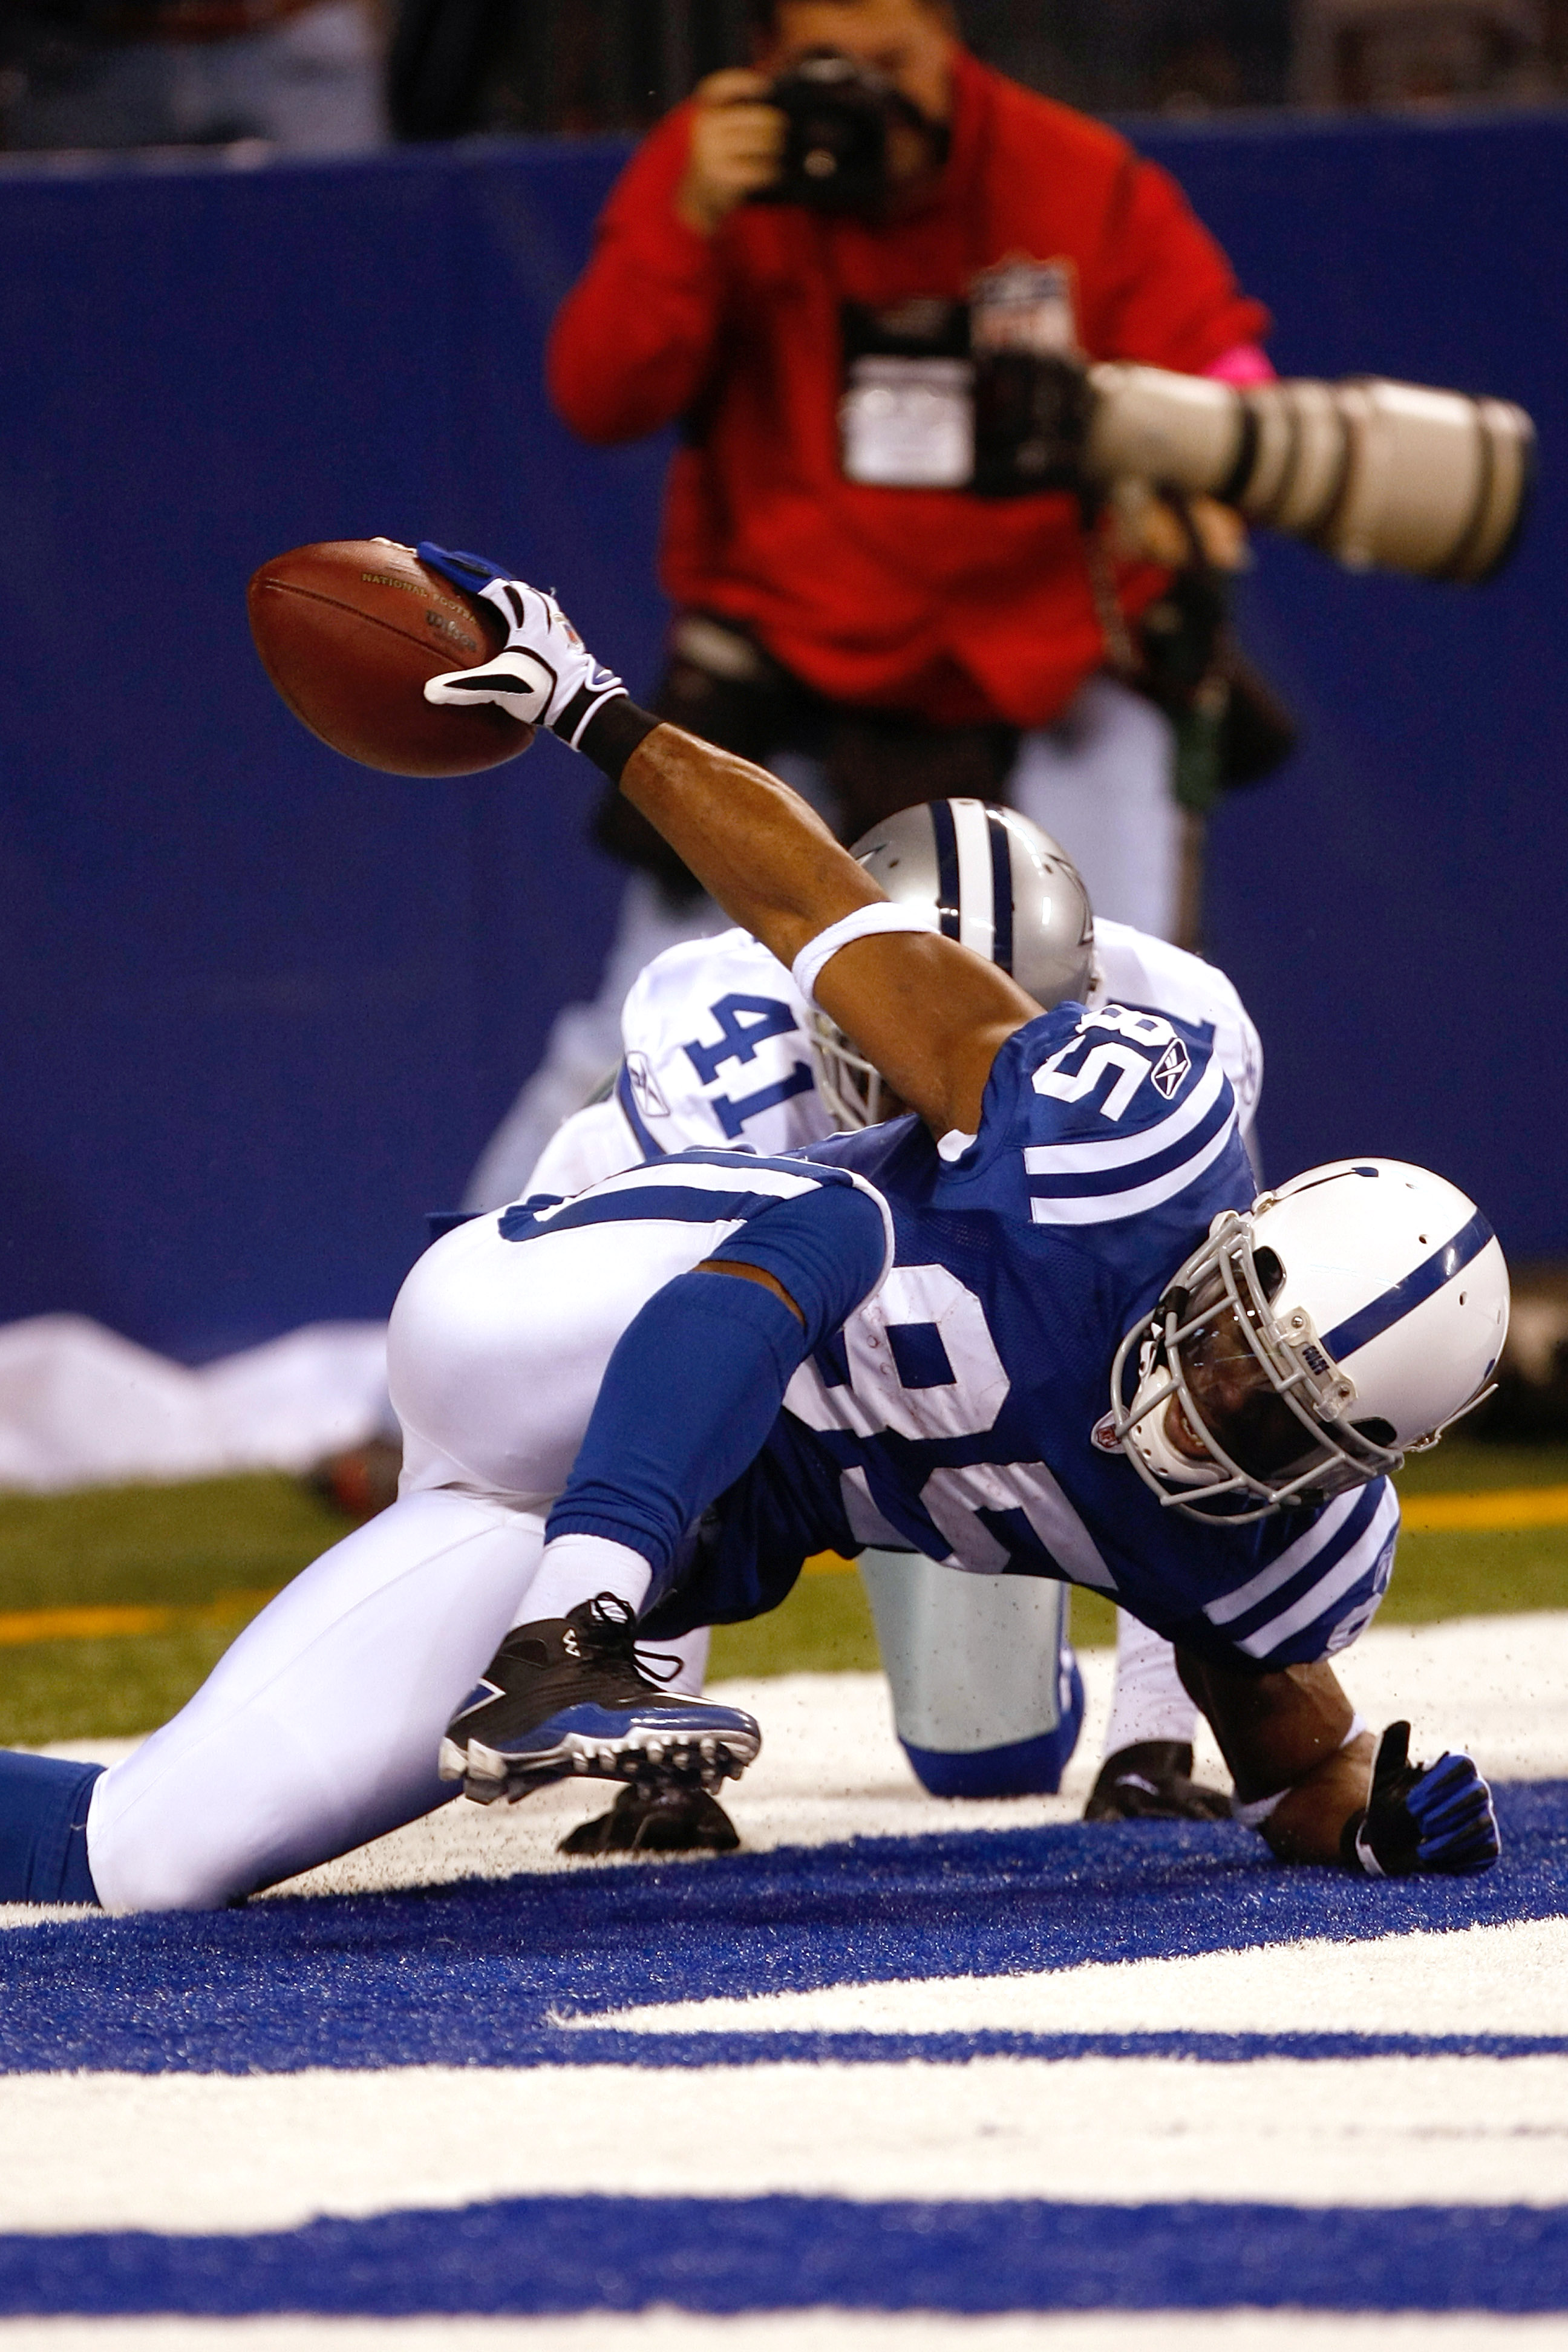 INDIANAPOLIS, IN - DECEMBER 05: Pierre Garcon #85 of the Indianapolis Colts scores a touchdown as Terrence Newman #41 of the Dallas Cowboys defends at Lucas Oil Stadium on December 5, 2010 in Indianapolis, Indiana.  (Photo by Scott Boehm/Getty Images)